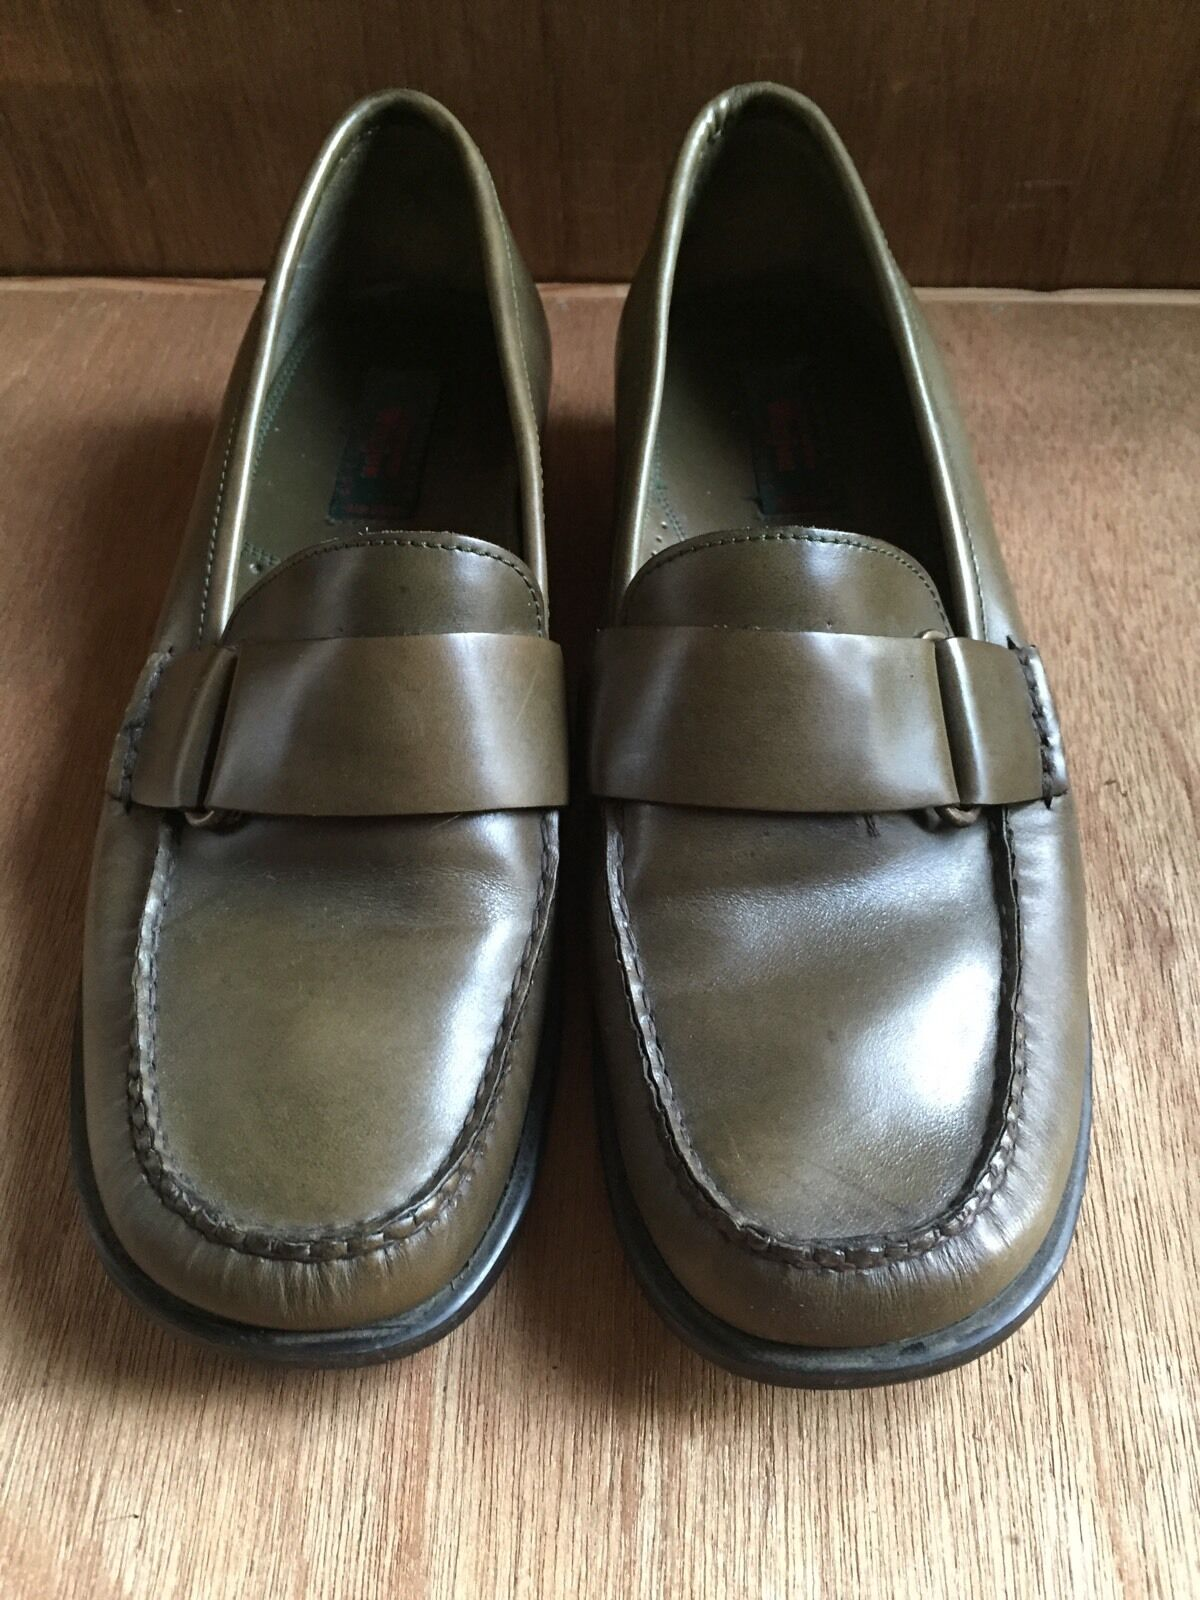 WEEJUNS GH BASS & CO Damenschuhe CECILIA Olive Green Slip on Loafers 8.5 M